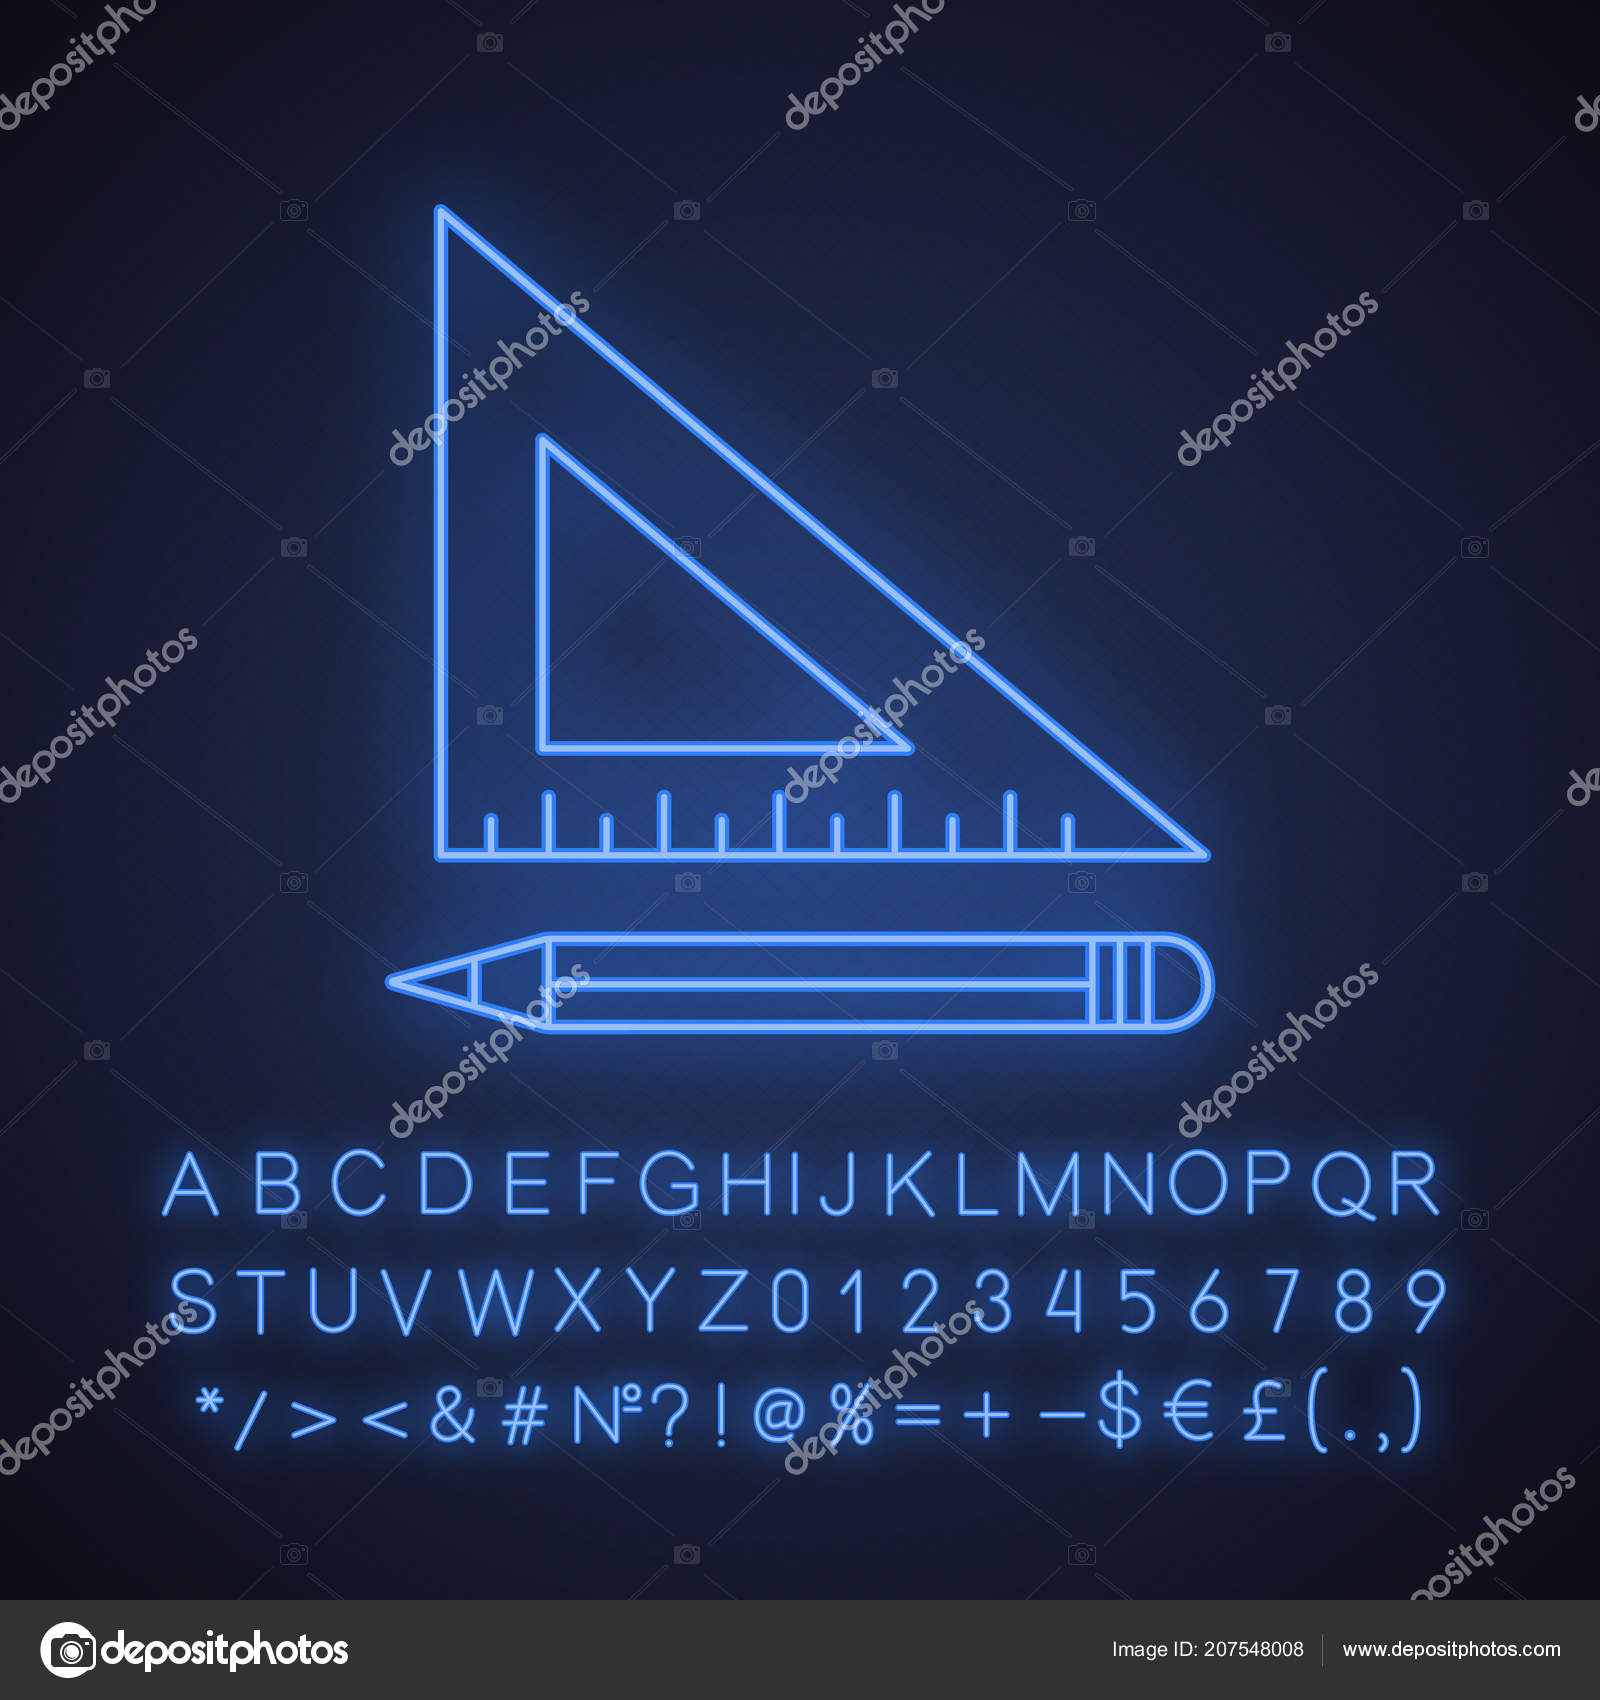 hight resolution of triangular ruler pencil neon light icon drafting glowing sign alphabet stock vector